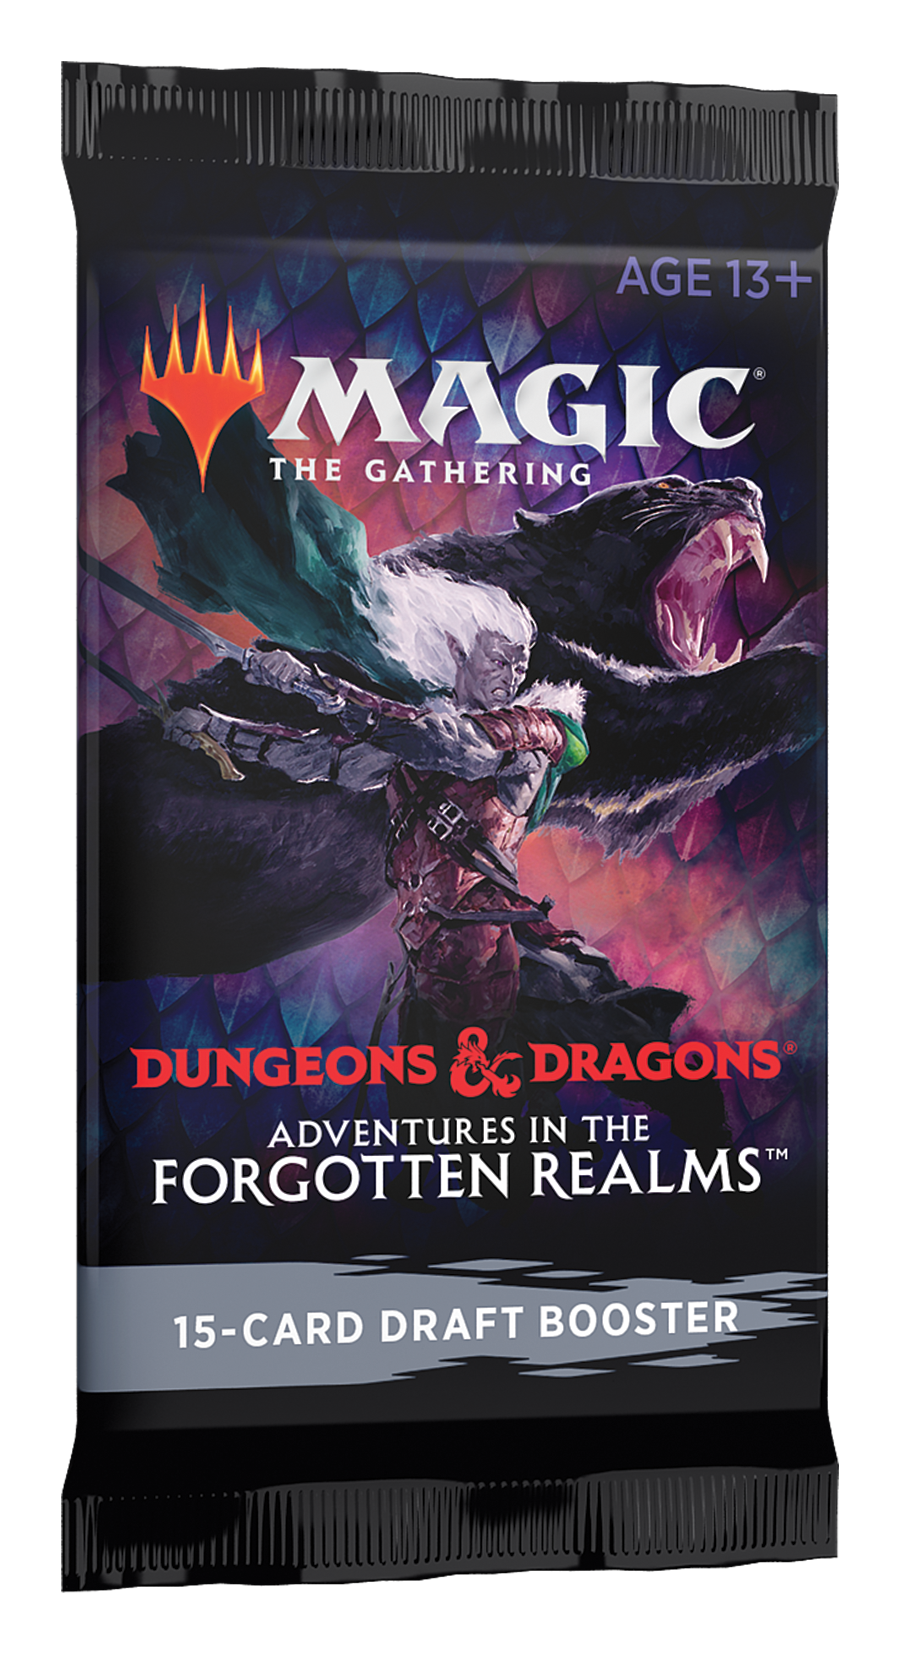 D&D Adventures in the Forgotten Realms Draft Booster Packs